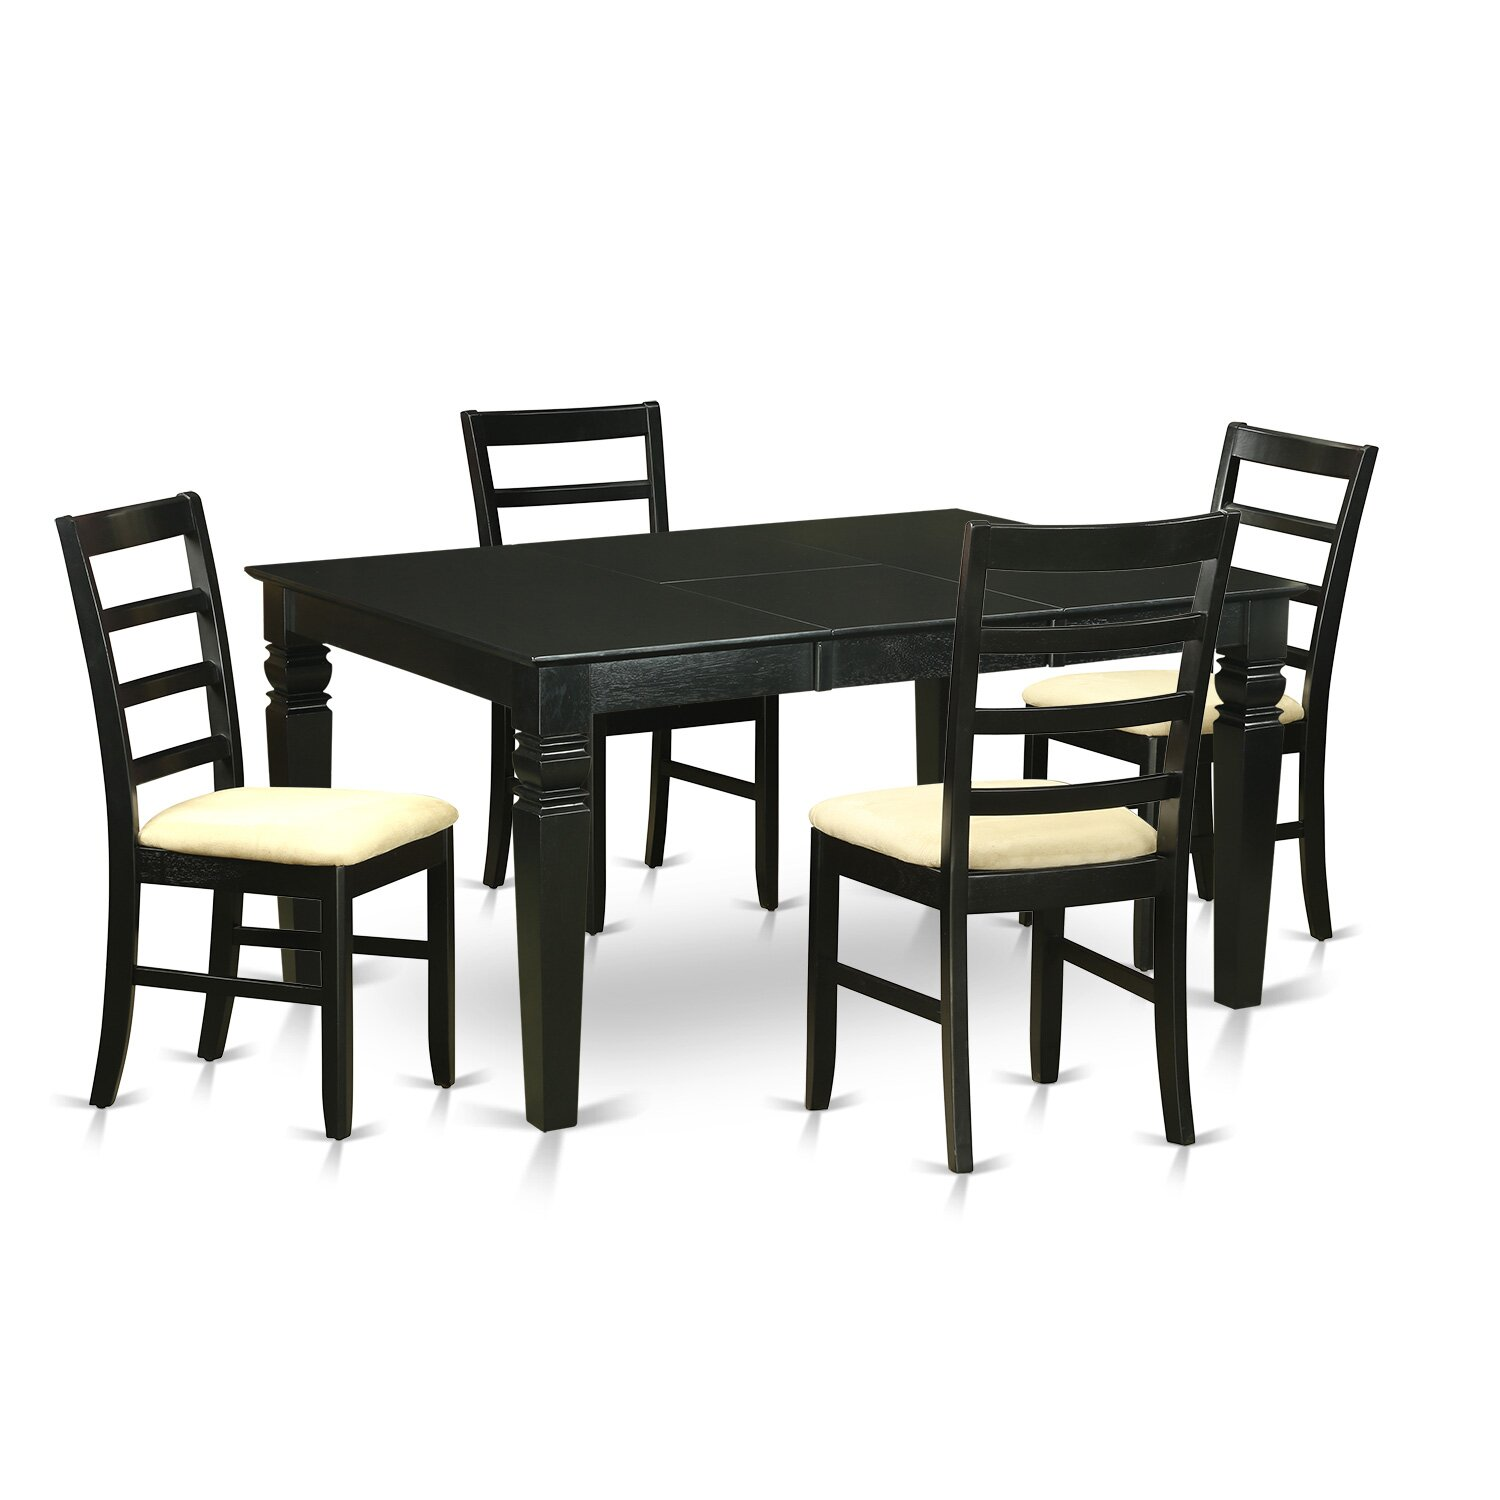 Wooden importers weston 5 piece dining set reviews wayfair for 13 piece dining table set